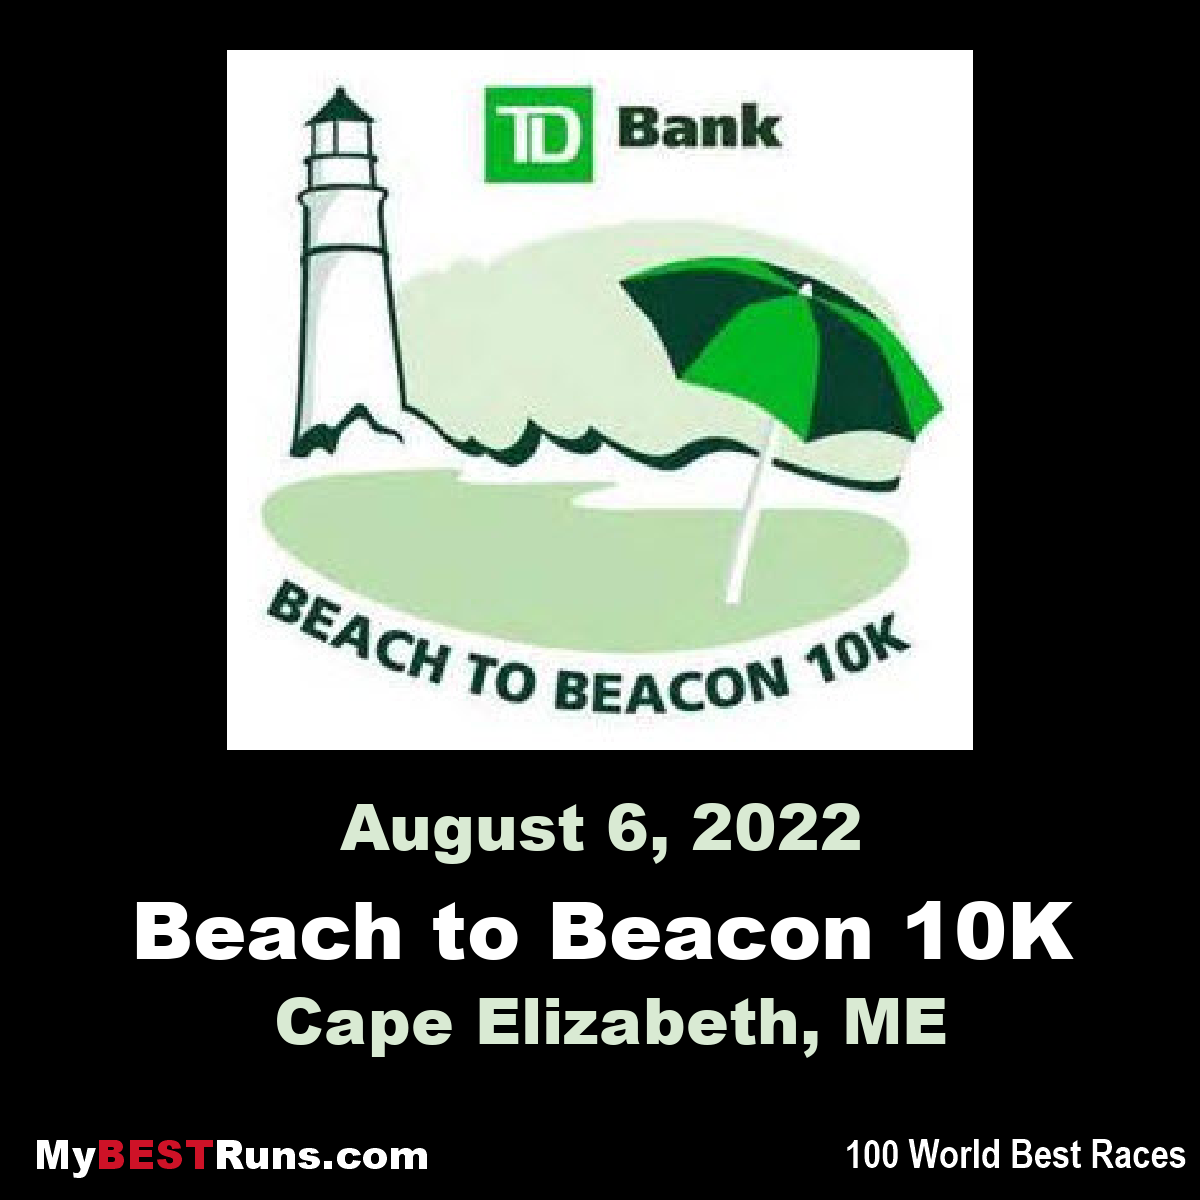 TD Beach to Beacon 10K